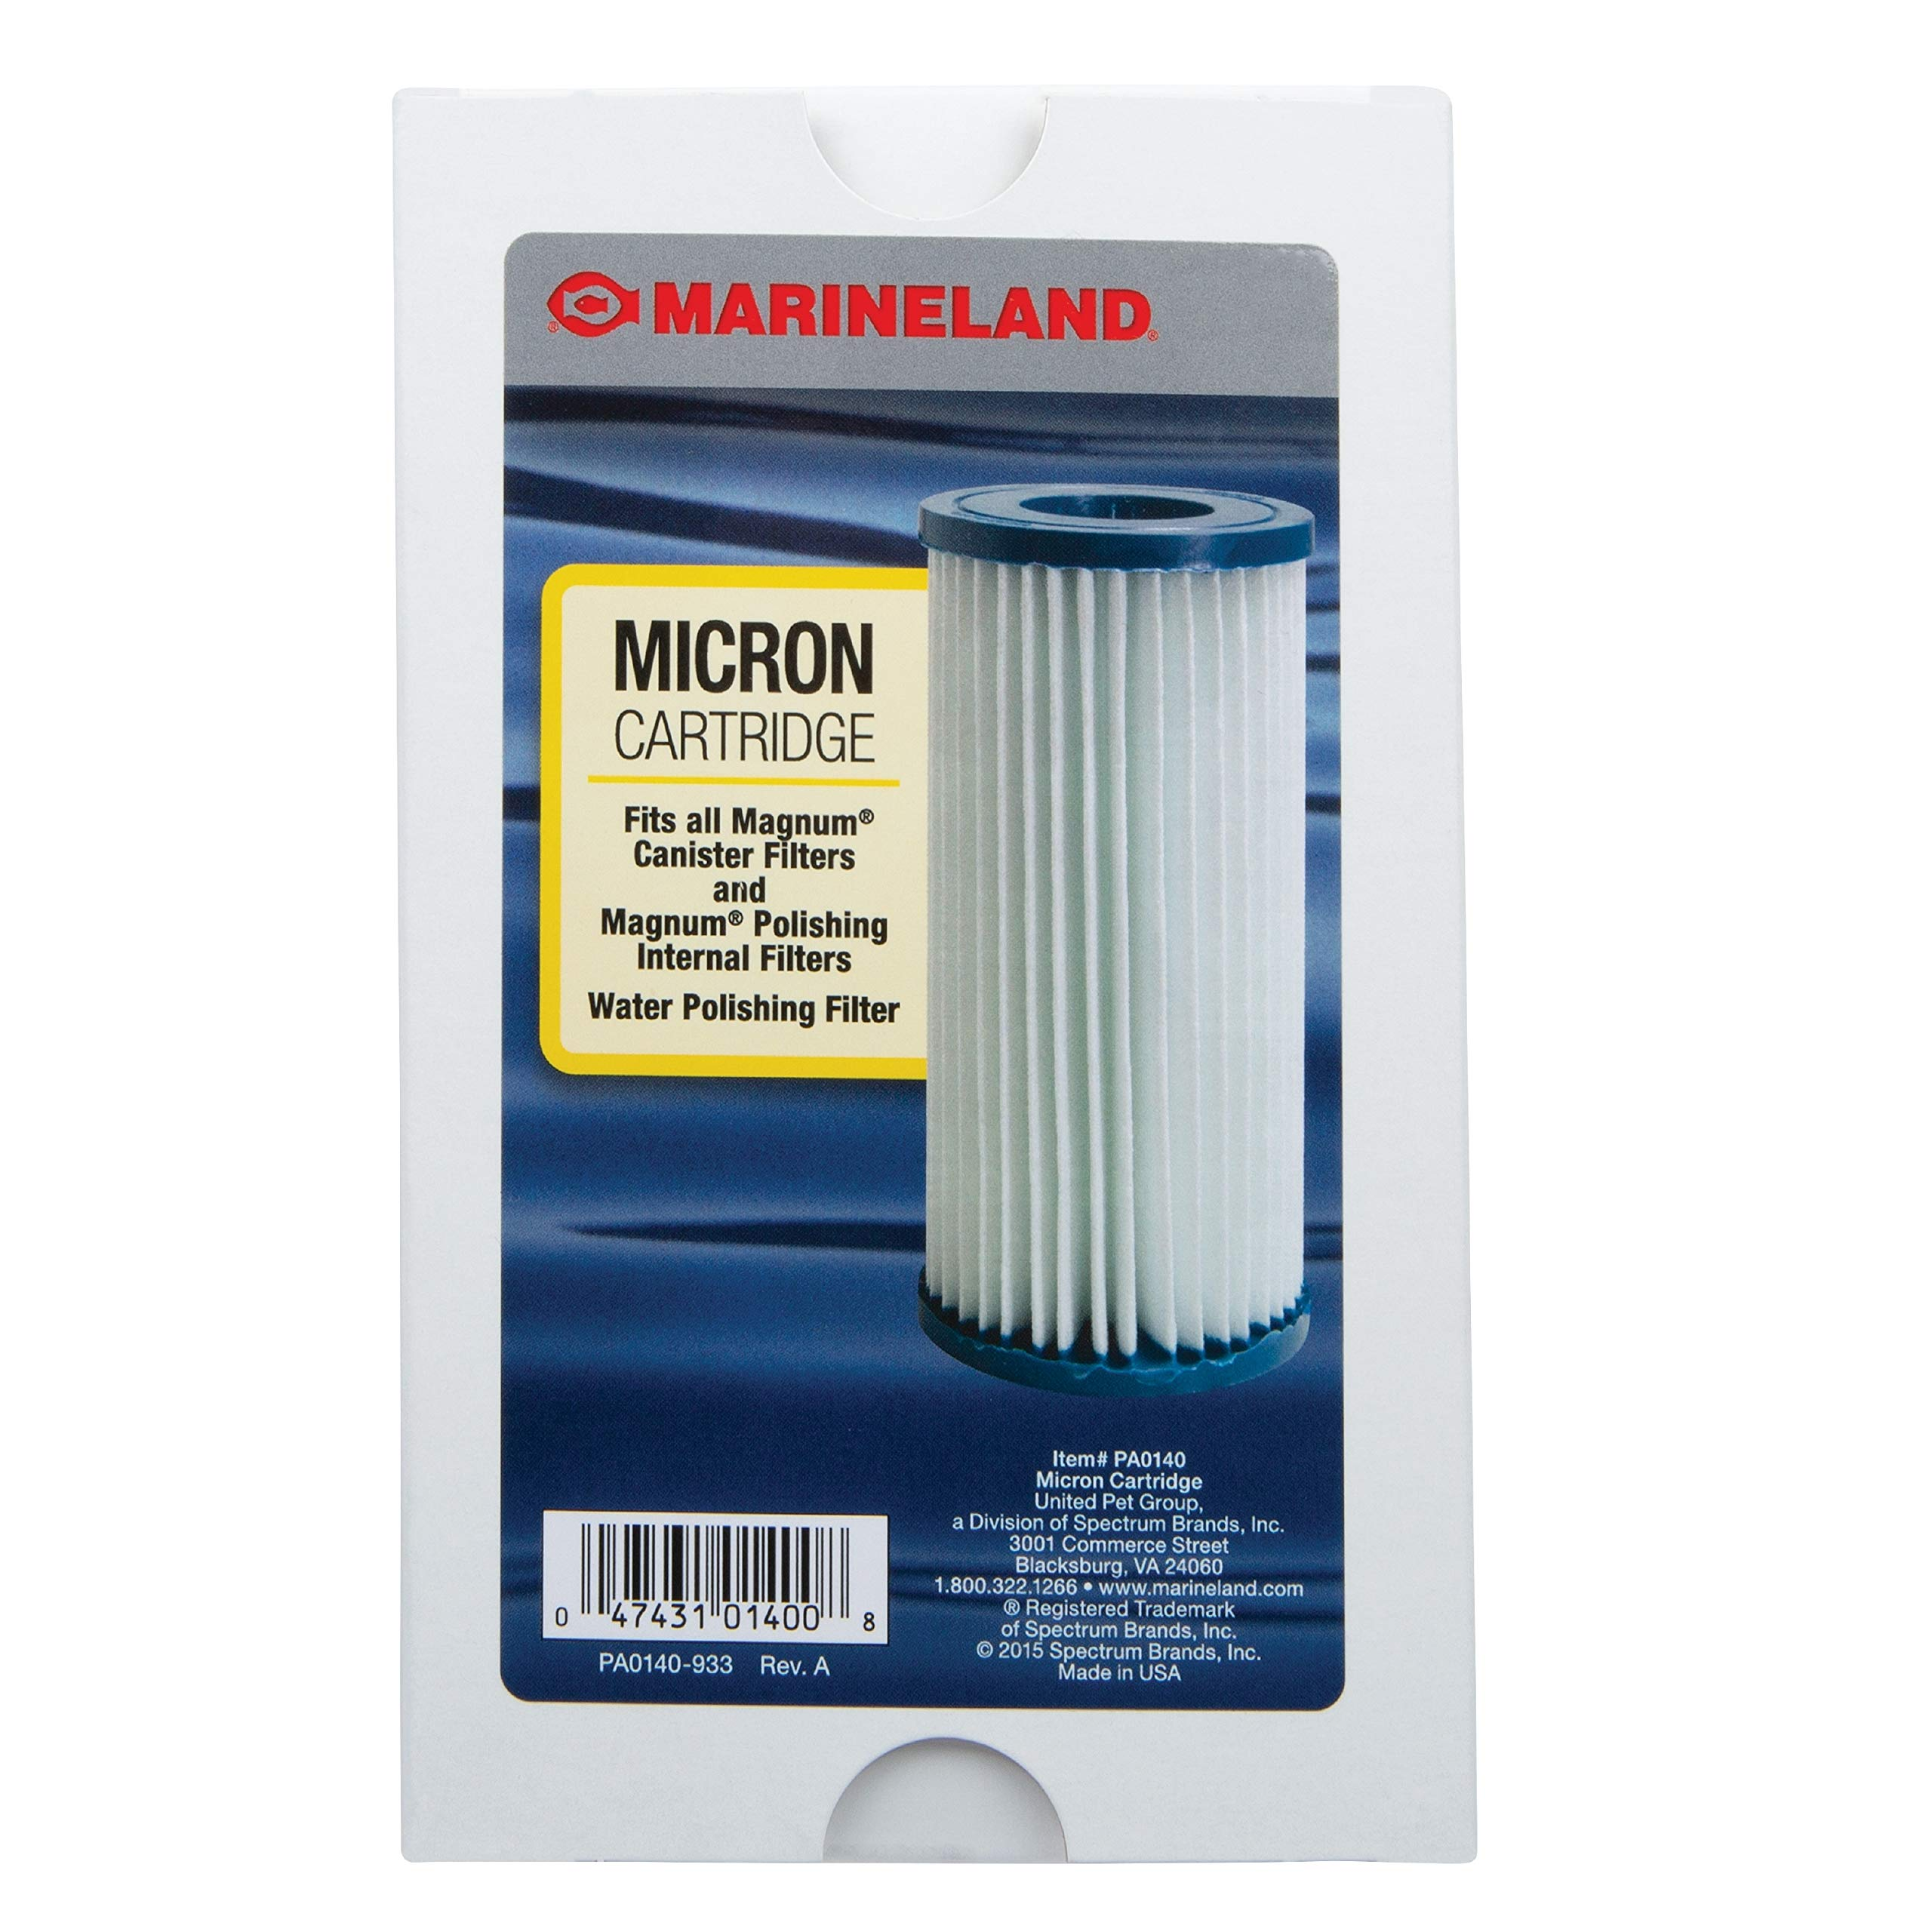 Marineland PA0140 Micron Cartridge, Fits Magnum Canister Filters , 1-Pack